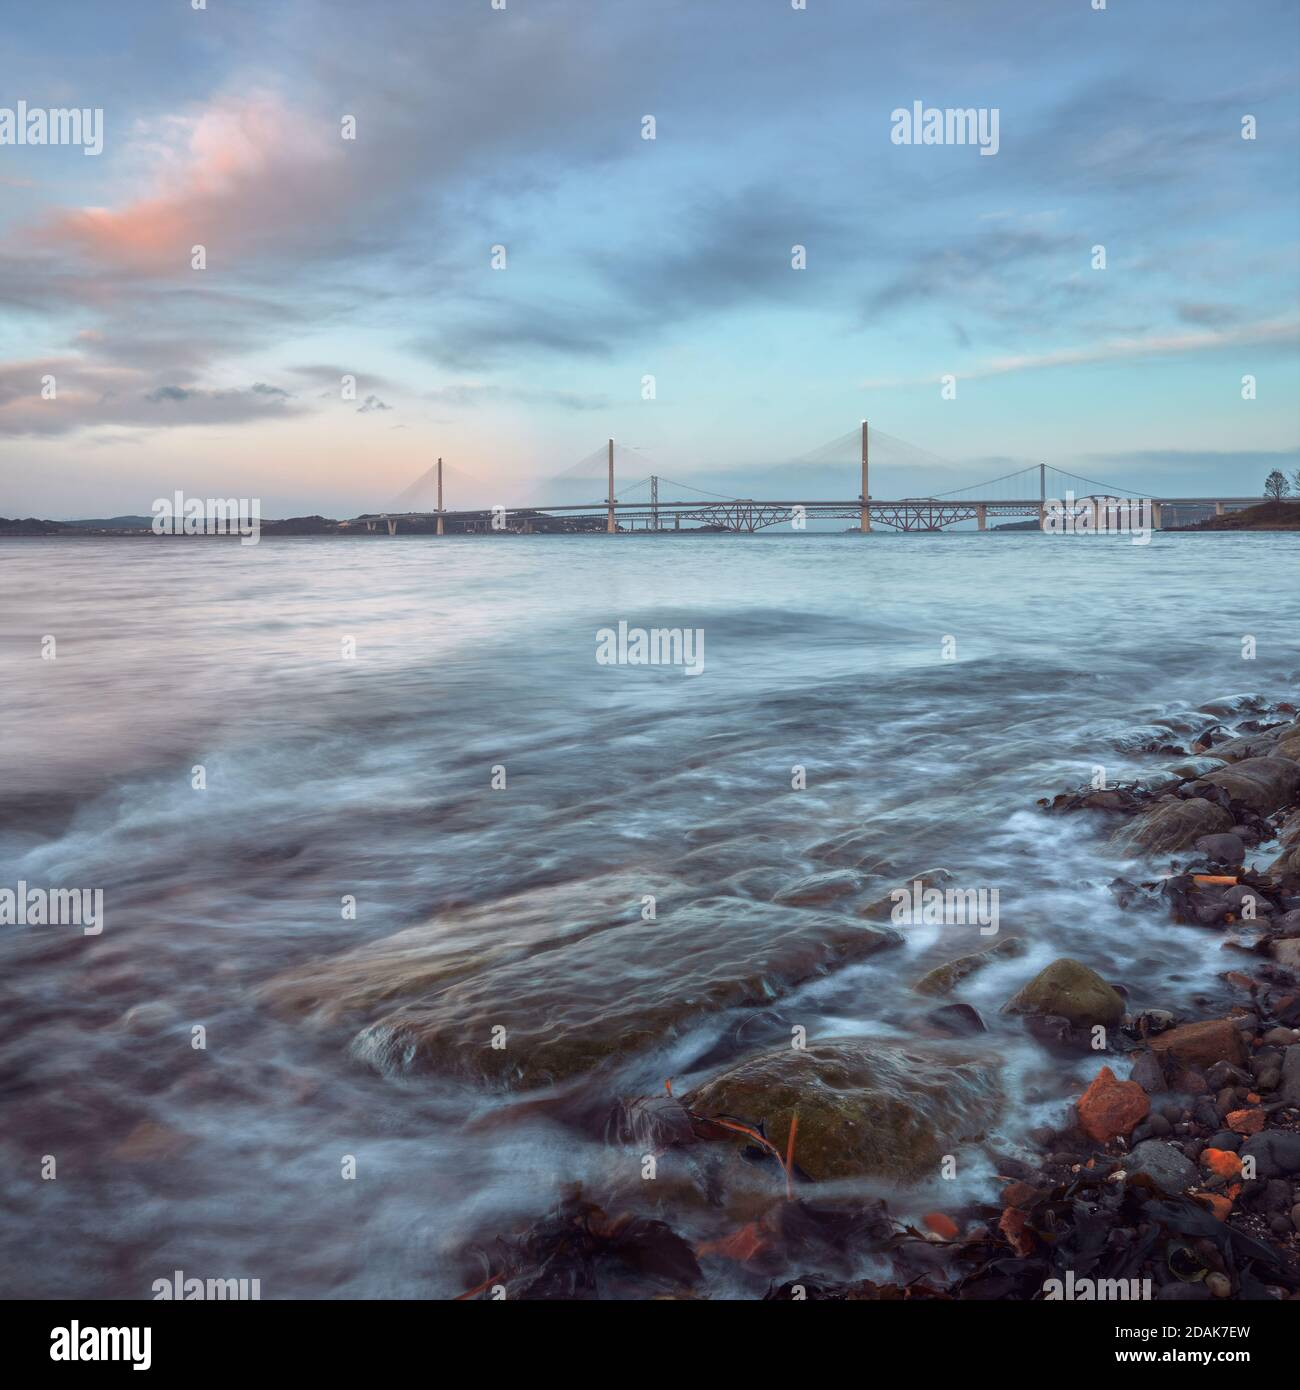 A coast of the sea bay with stones at sunset near New Queensferry Crossing Bridge in Scotland Stock Photo